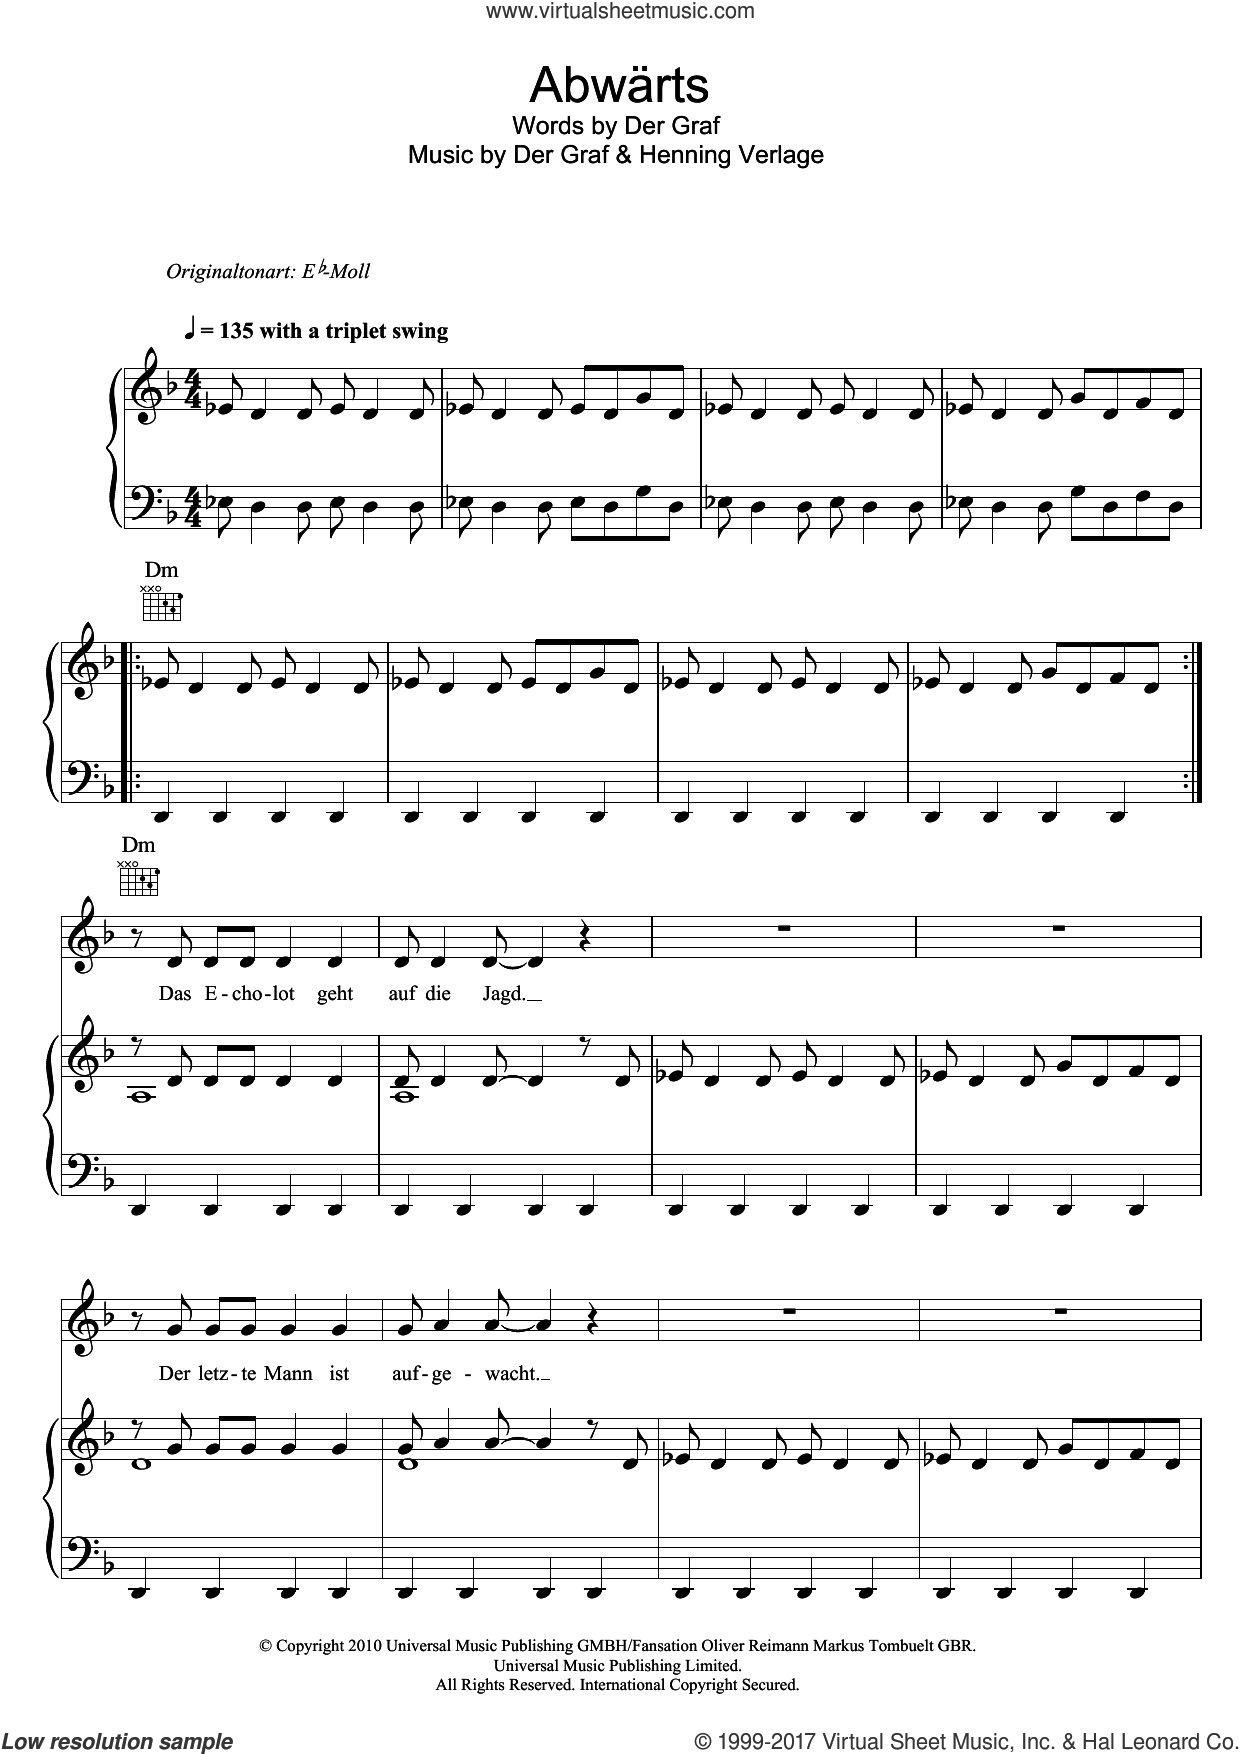 Abwarts sheet music for voice, piano or guitar by Unheilig, Der Graf and Henning Verlage, intermediate skill level